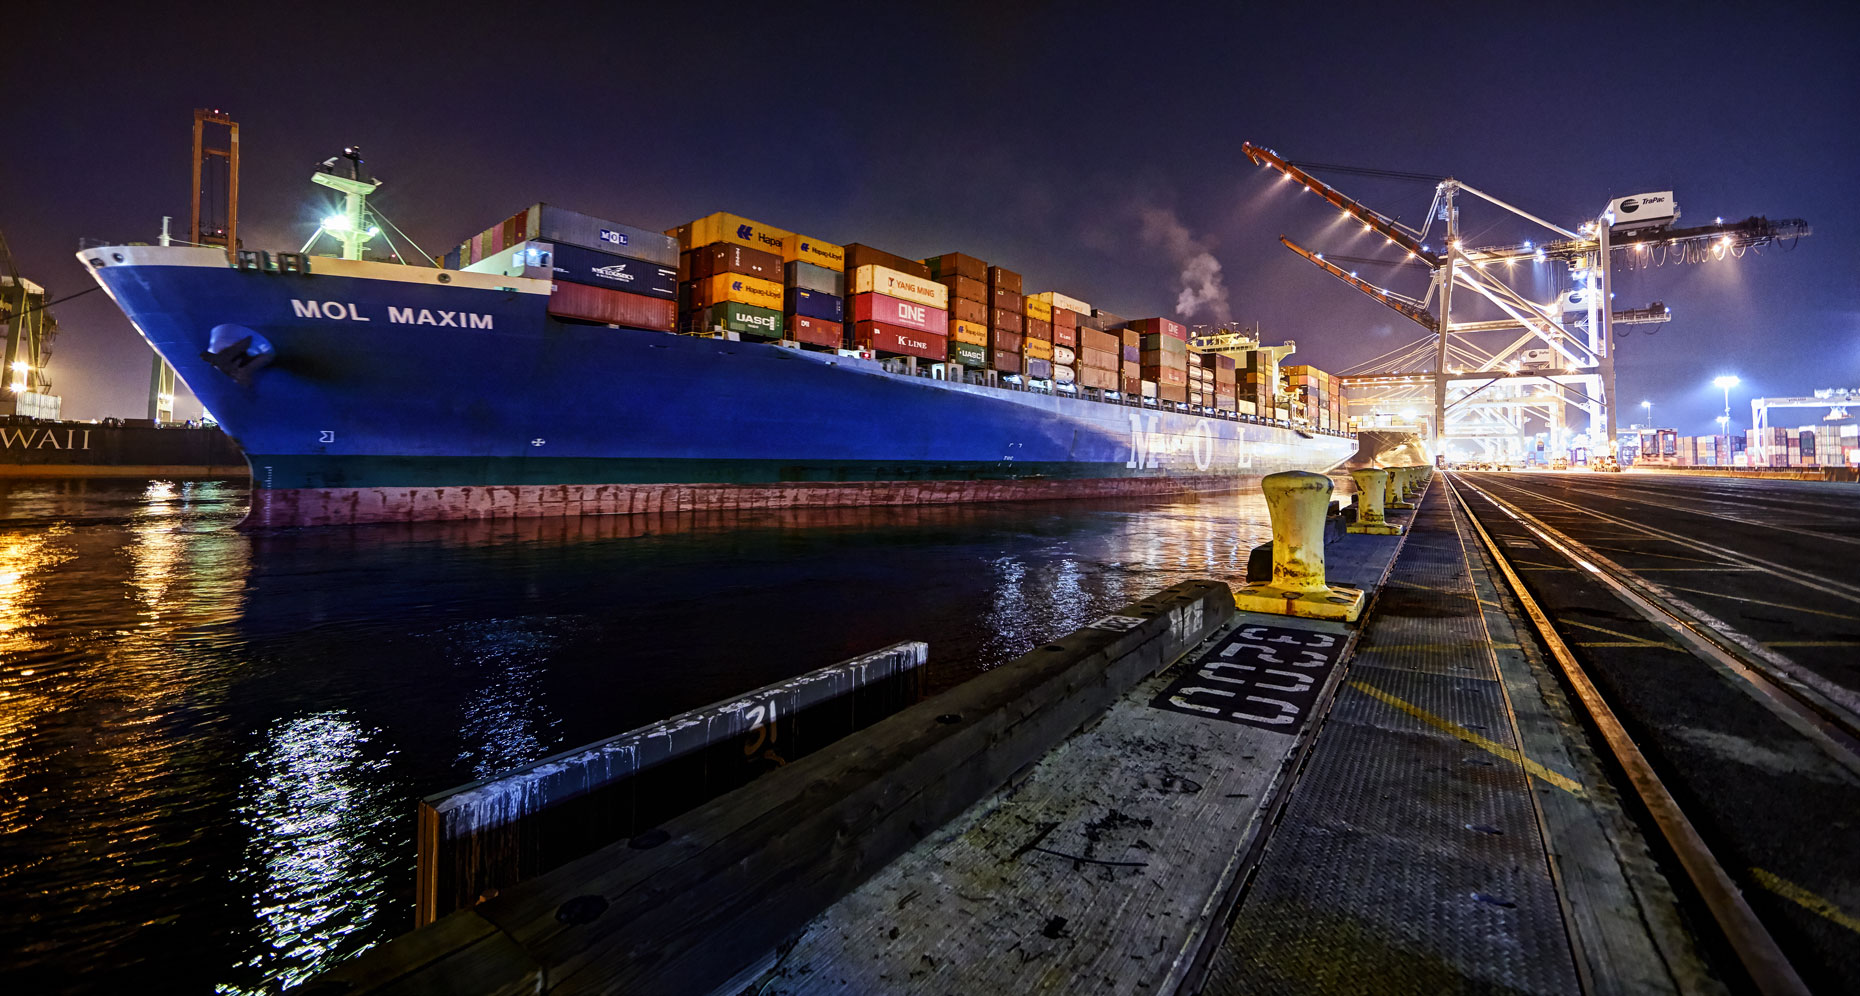 Container ship/harbor/San Diago/night/location photography